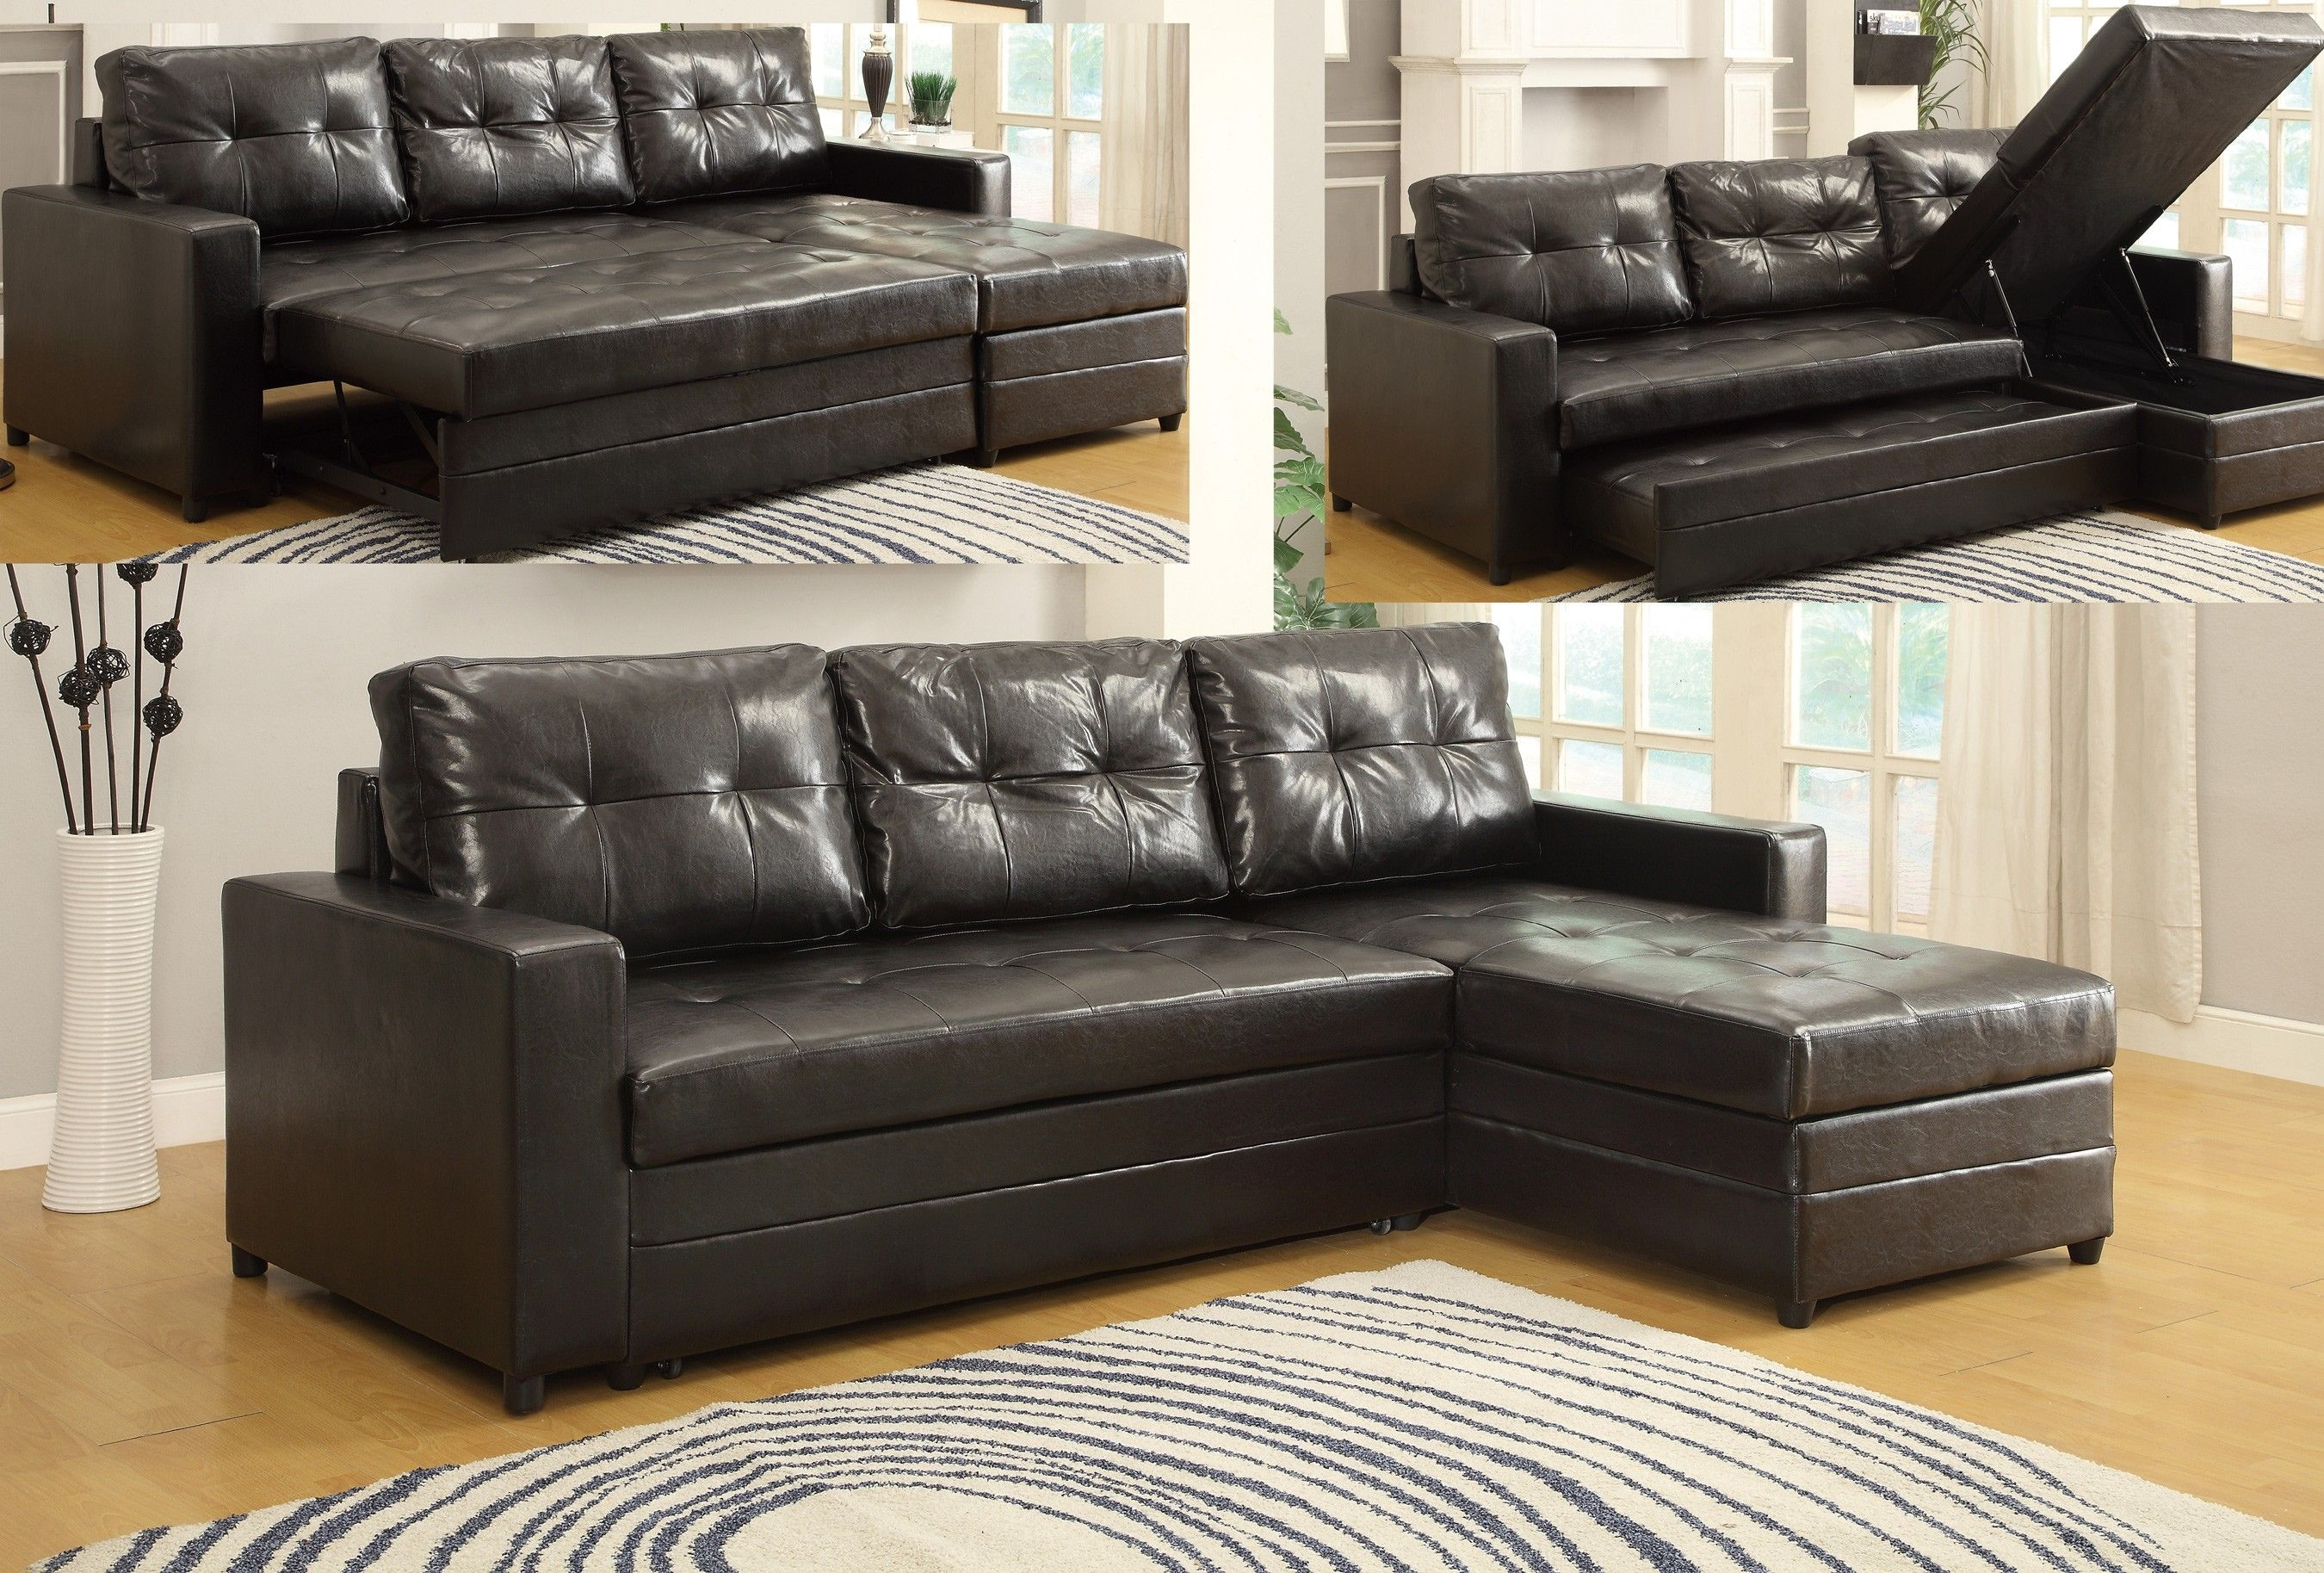 Cheap Sofas Brown Leather Sectional Sofa Bed